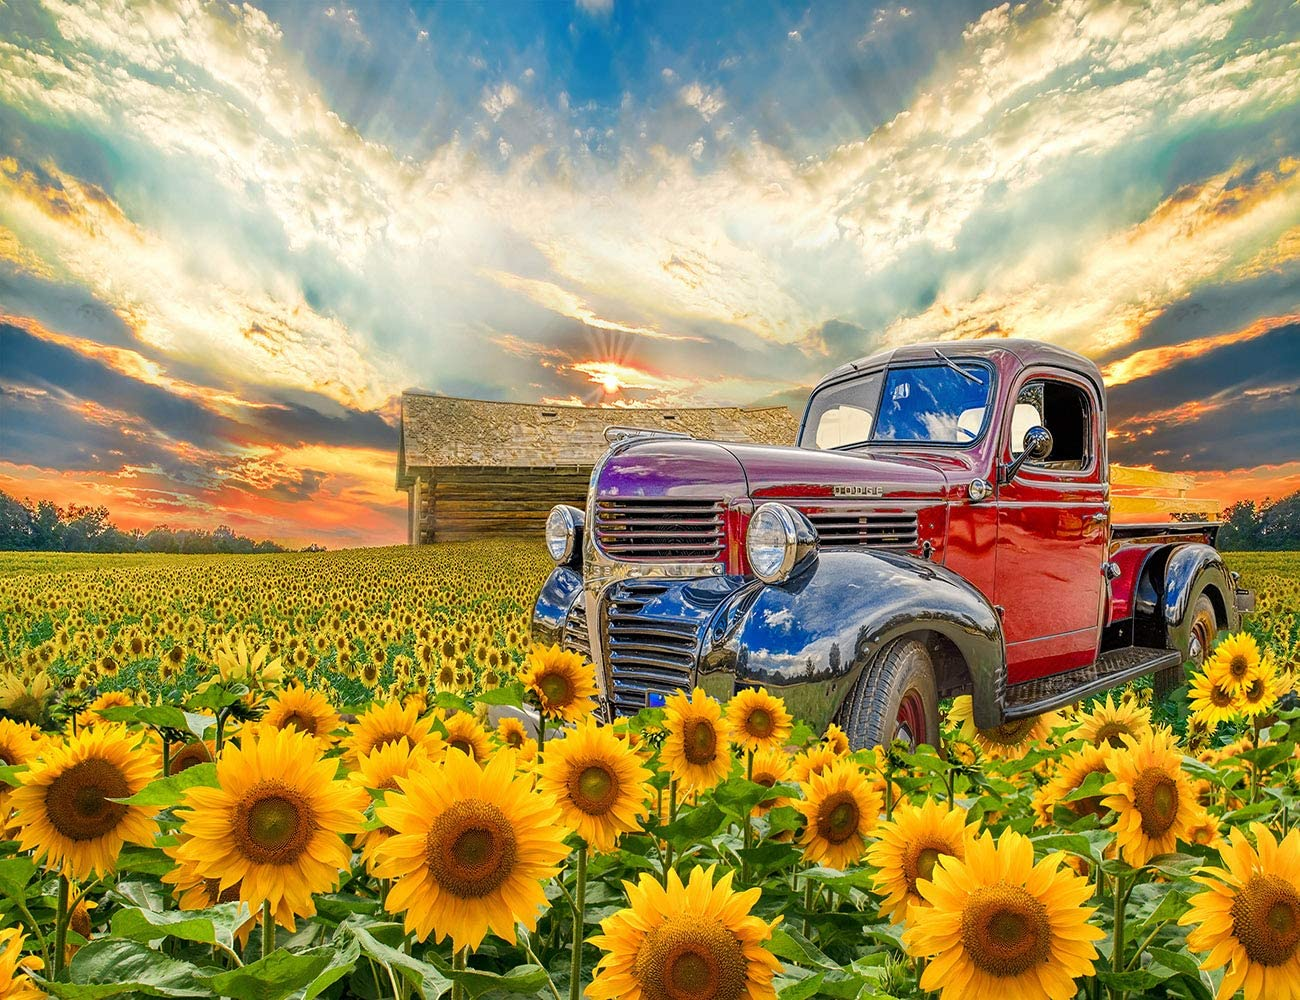 LB 10x8ft Sunflower Backdrop for Photograph Fall Rural Theme Background for Party Decorations Fall Sunflower and Truck Decorations for Video Sunflower Birthday Party Decorations Photo Booth